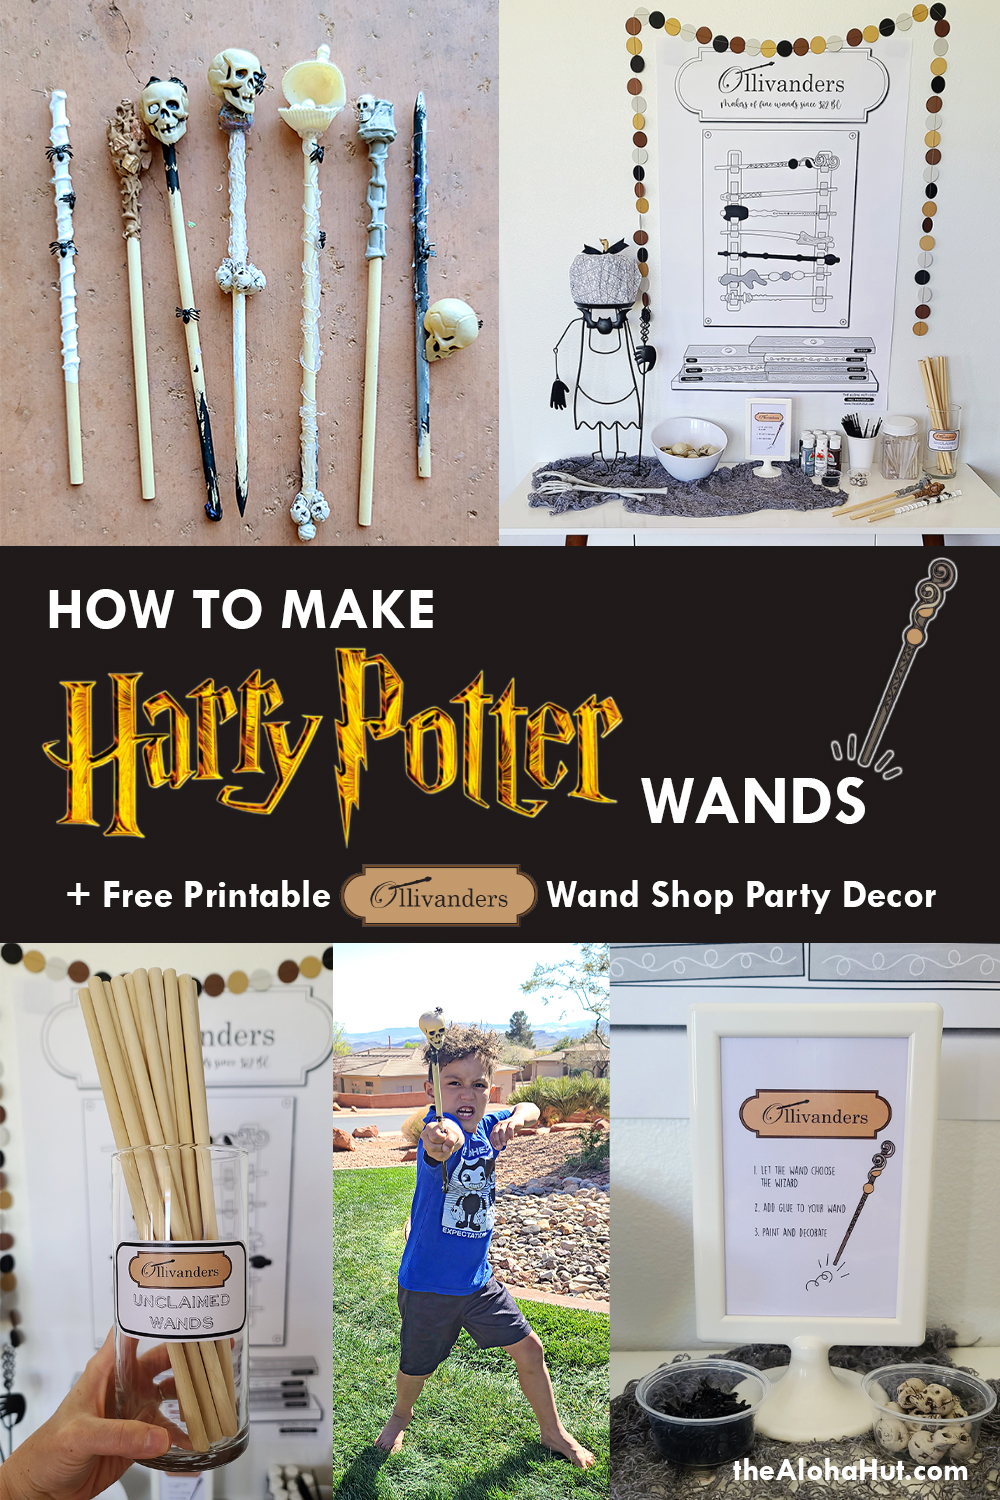 Harry Potter Party Ollivanders Wands by the Aloha Hut